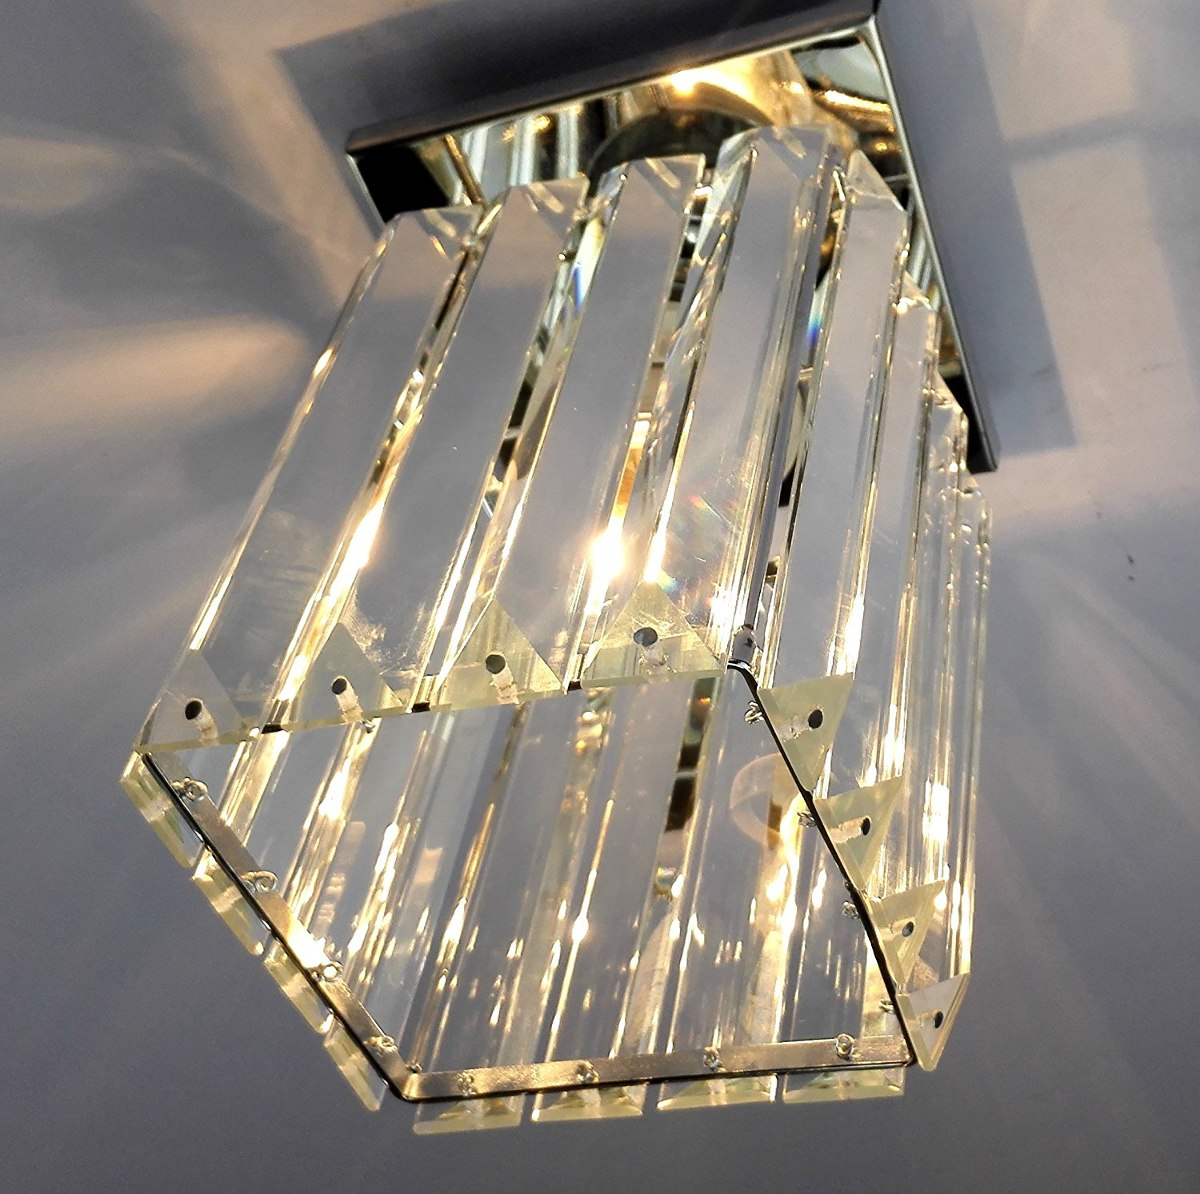 Agnes lighting crystal ceiling lamp chandelier 1 light w5 cargando zoom aloadofball Image collections